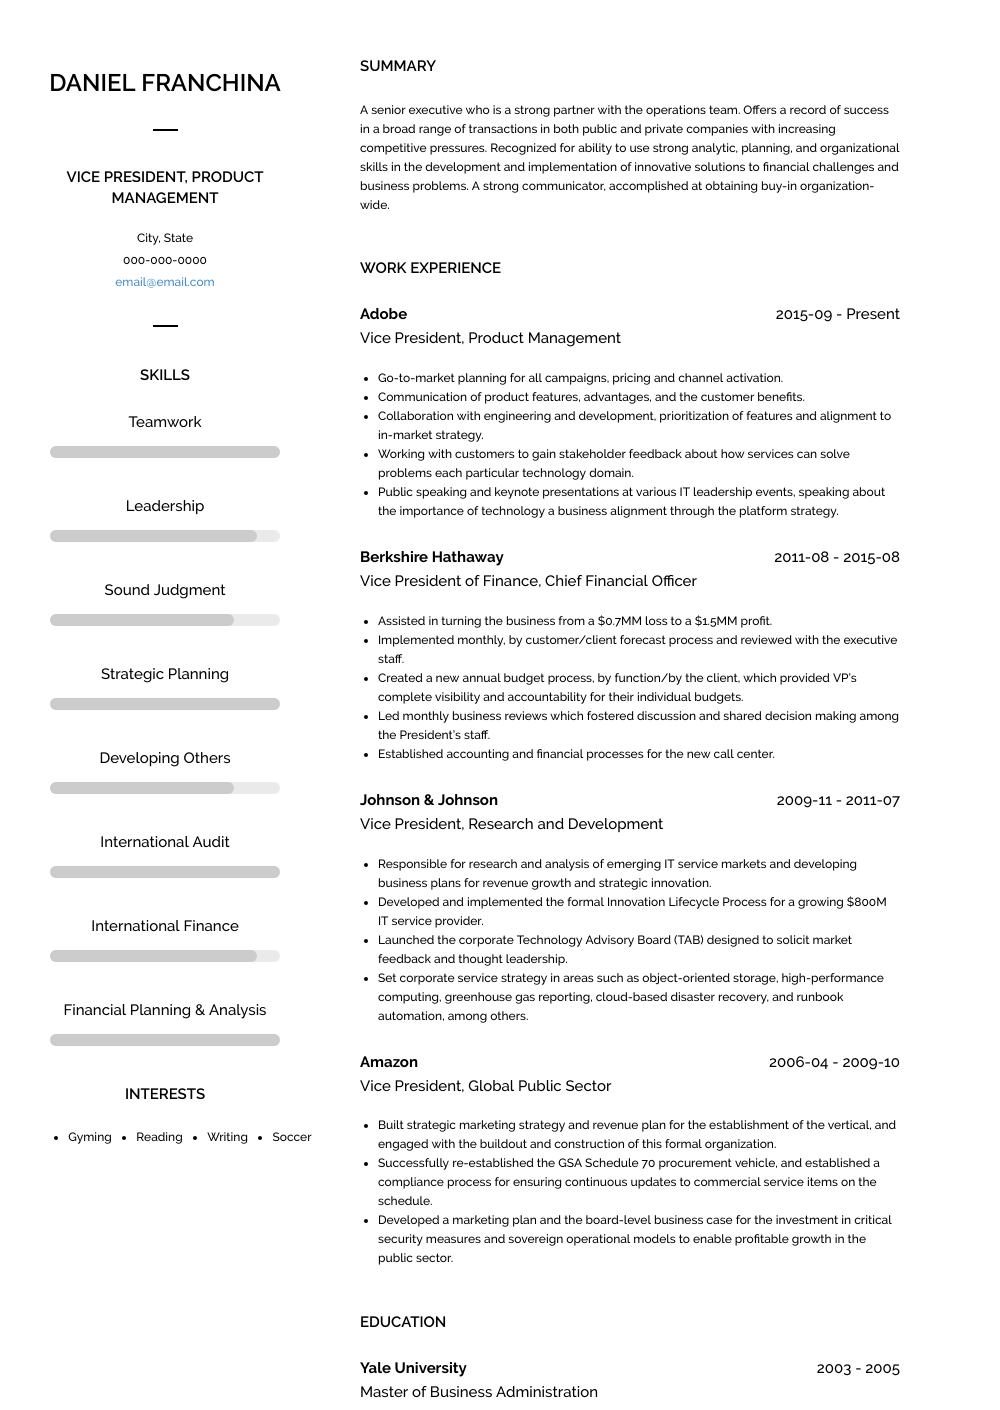 Vice President Product Management Resume Sample